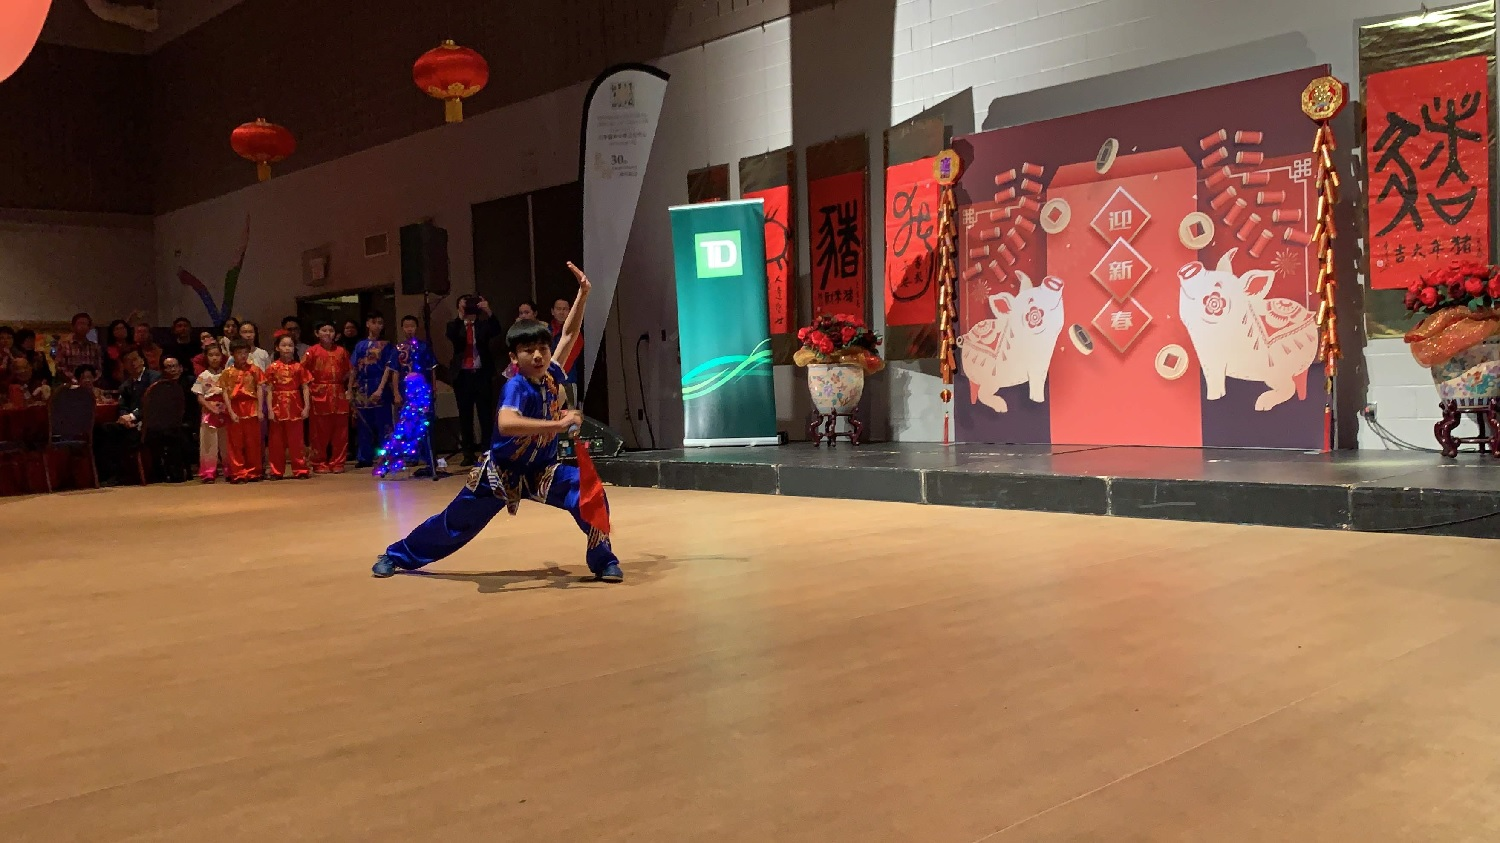 wayland-li-wushu-year-of-the-pig-dinner-chinese-cultural-centre-2019-09.jpg